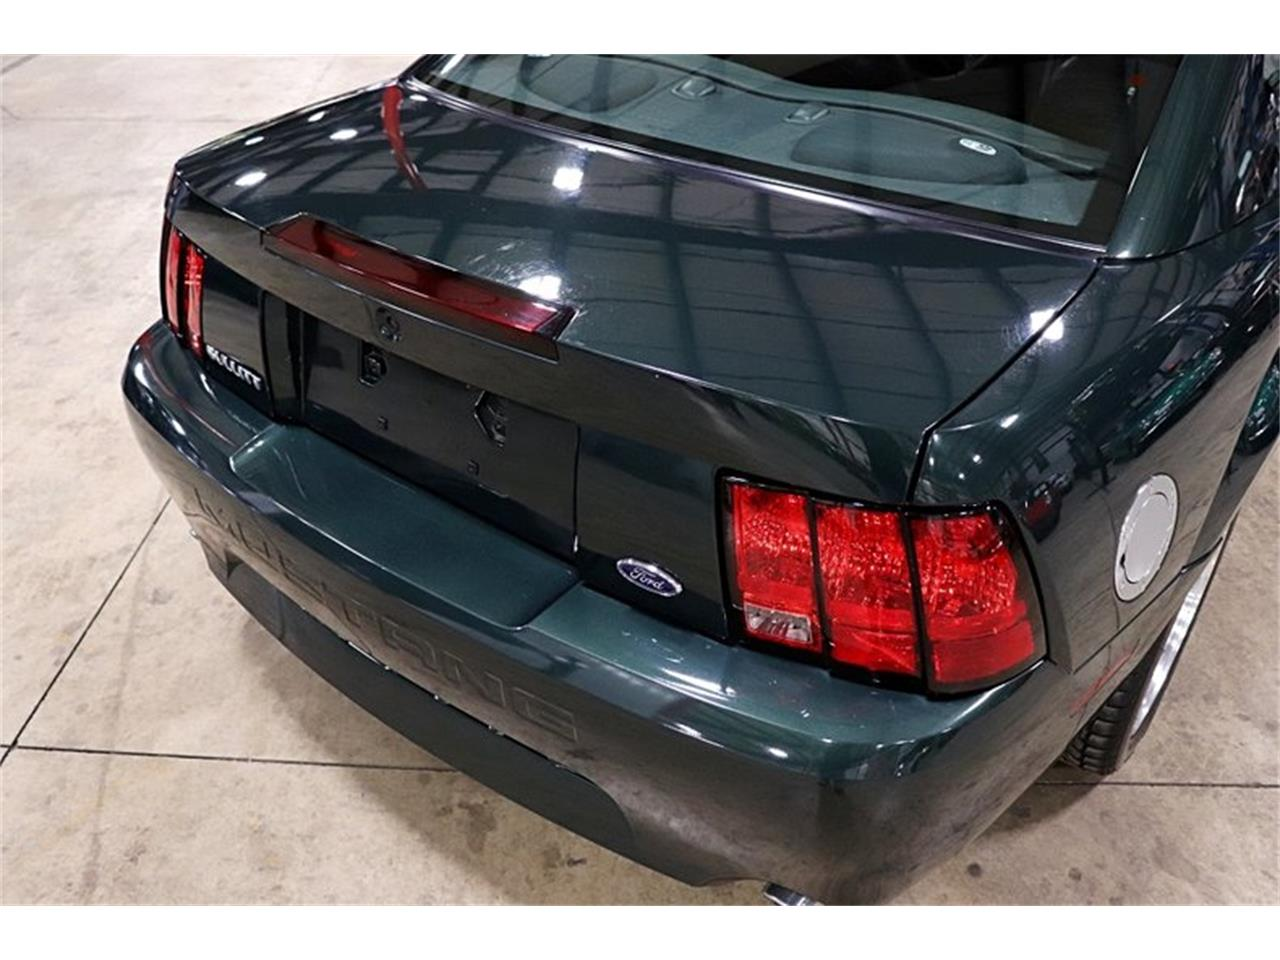 2001 Ford Mustang for sale in Kentwood, MI – photo 11